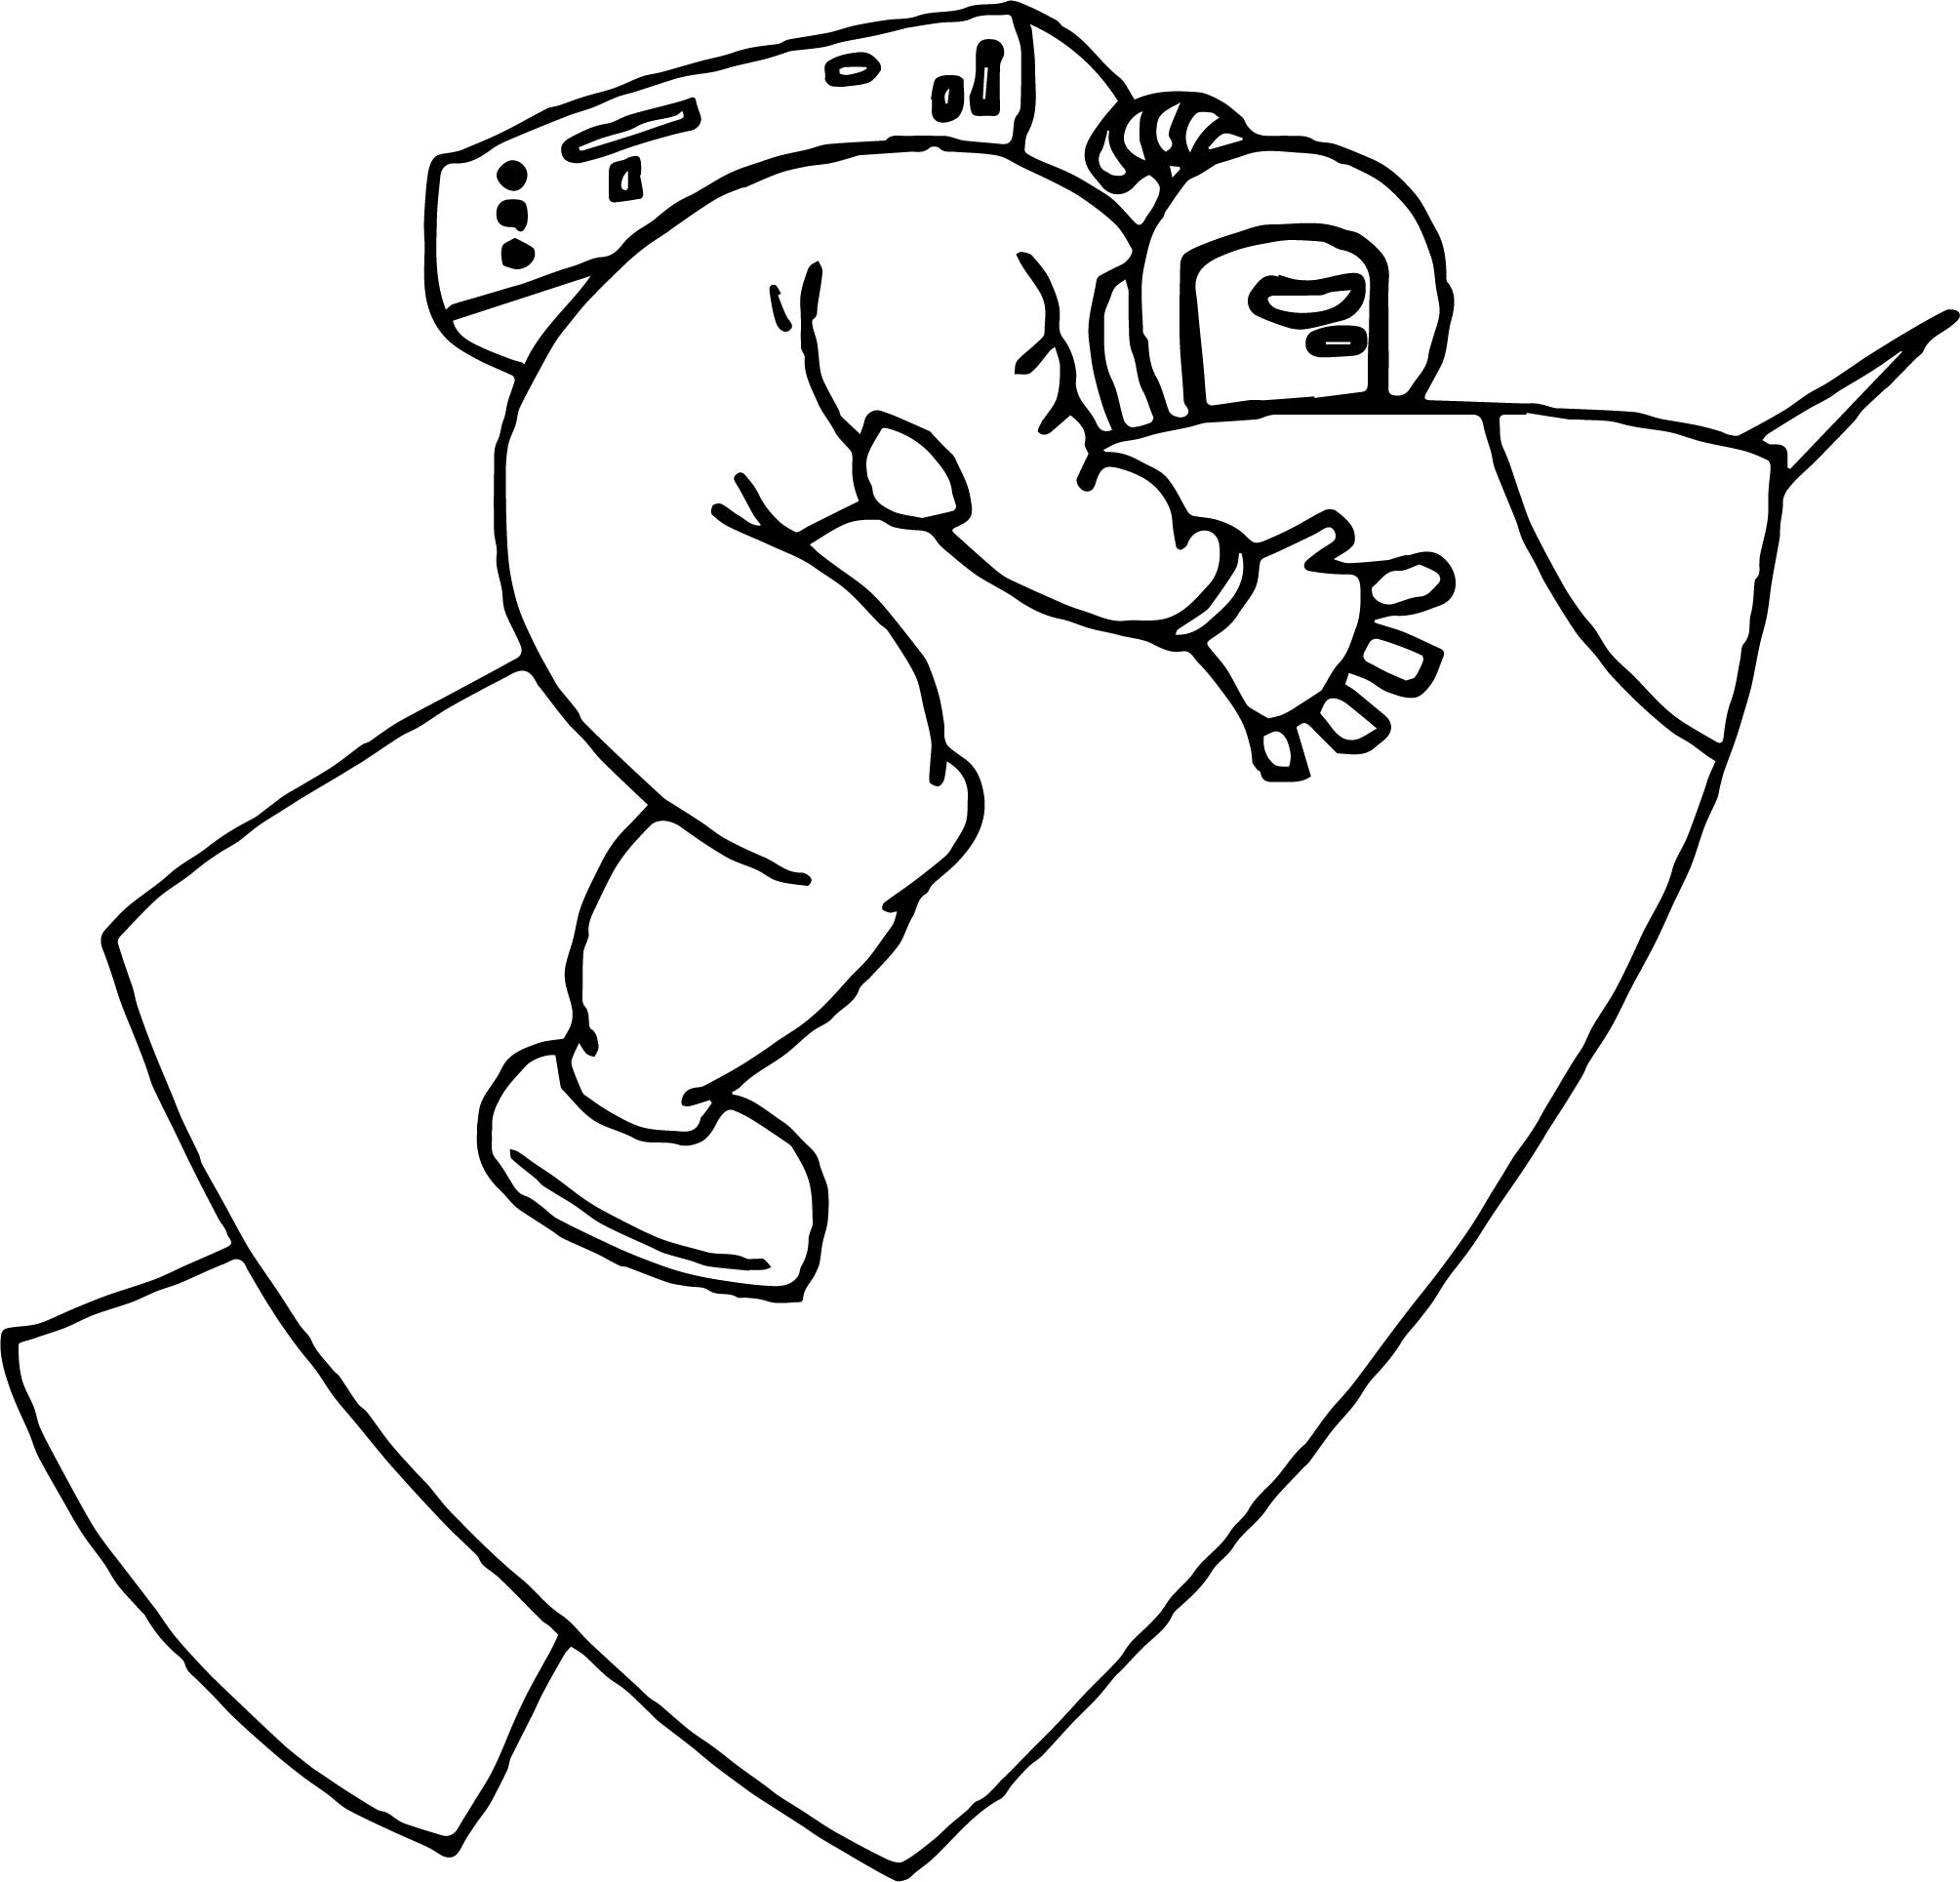 Astronaut Unkown Coloring Page